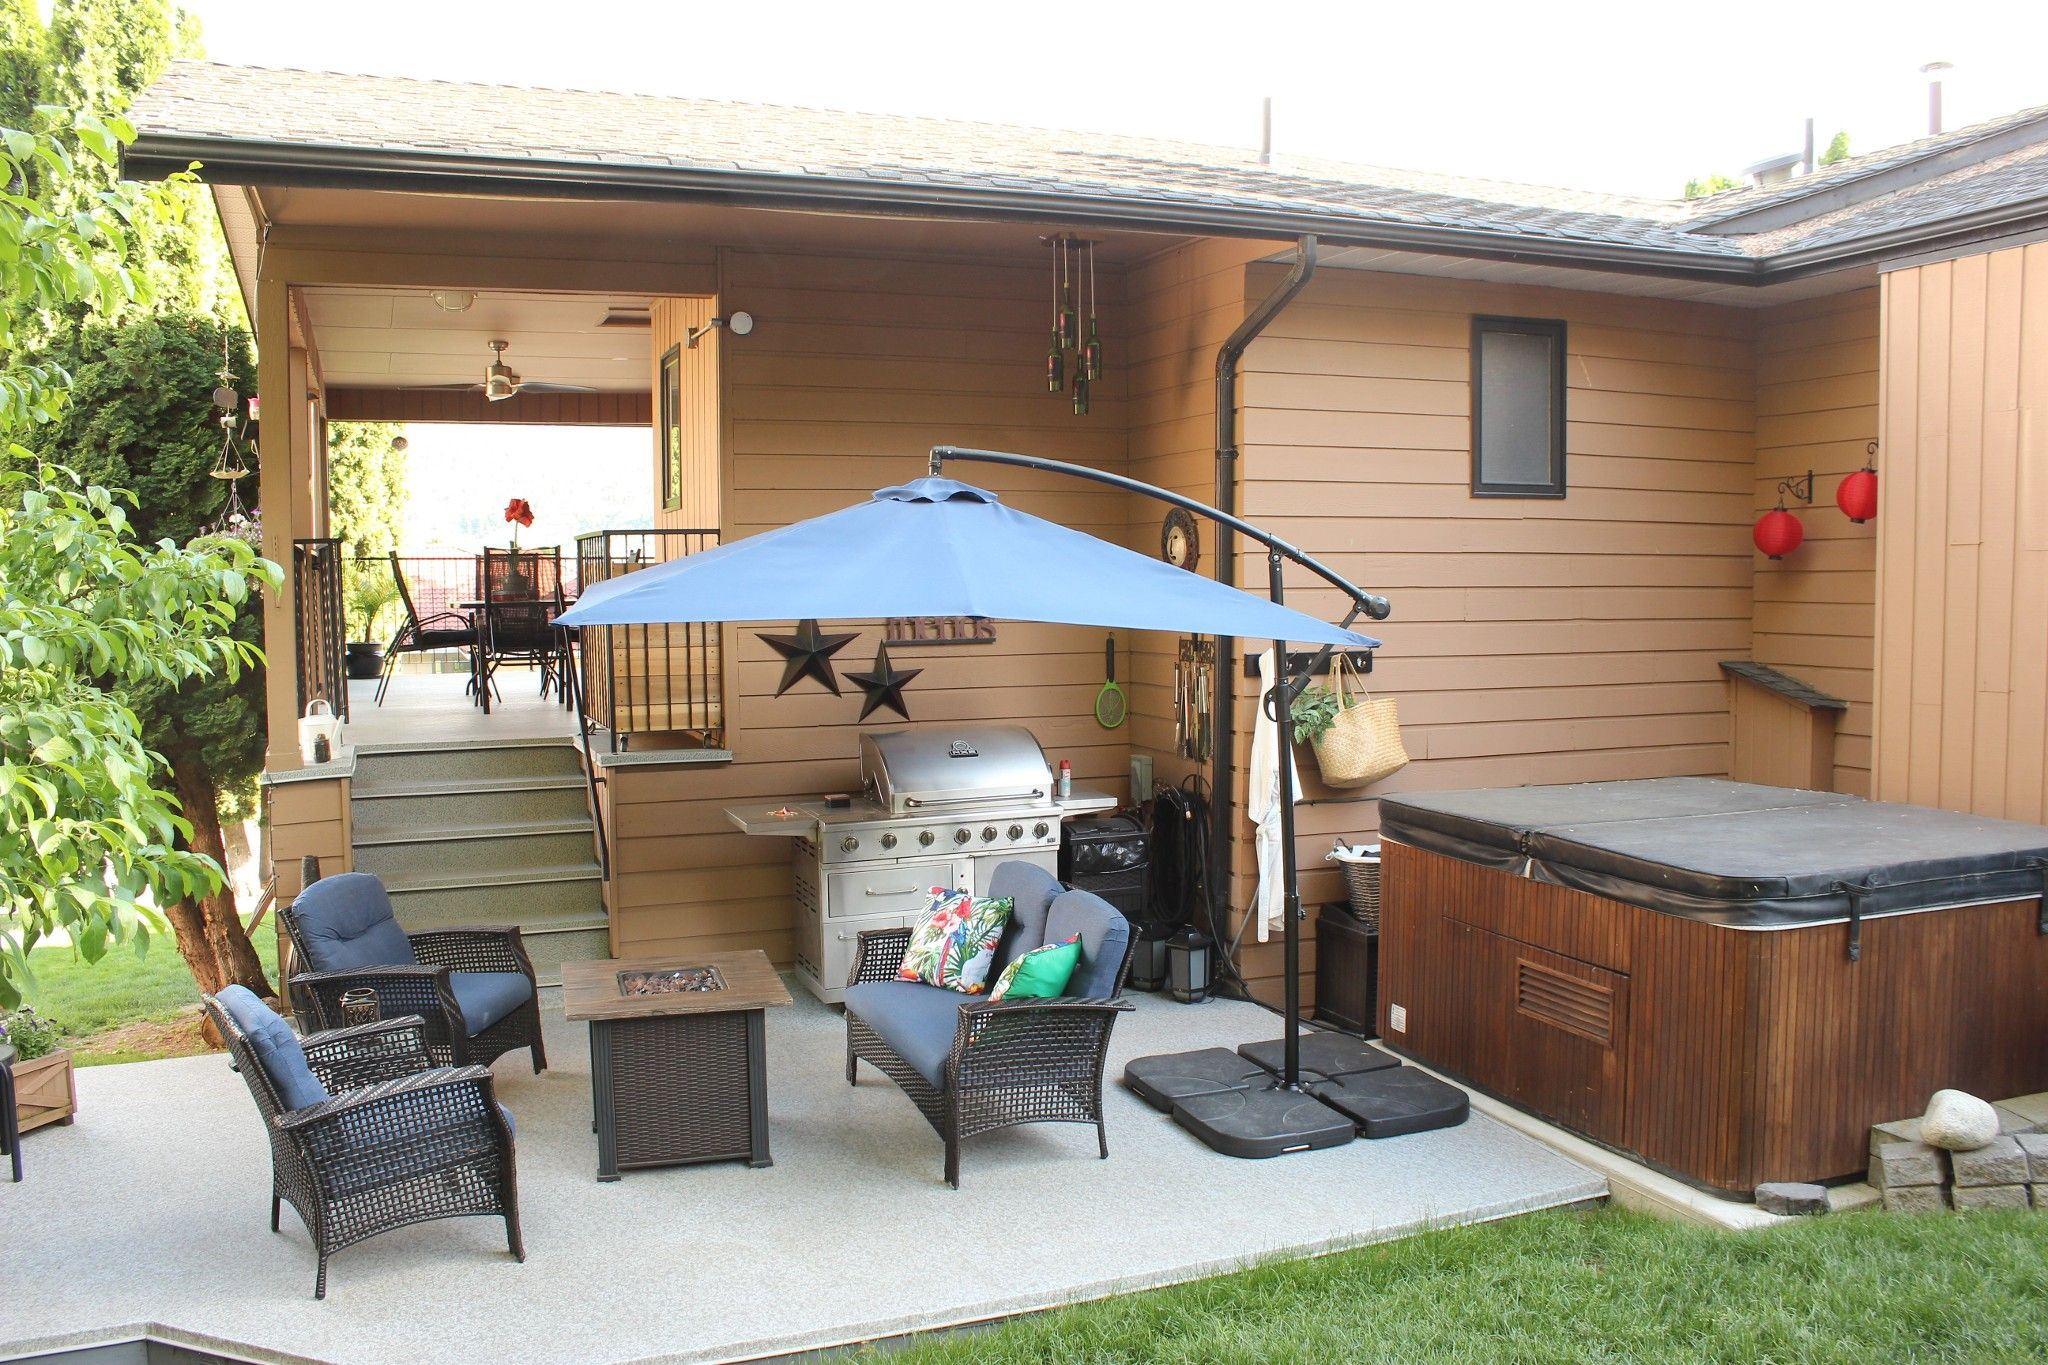 Photo 29: Photos: 3461 Navatanee Drive in Kamloops: South Thompson Valley House for sale : MLS®# 150033